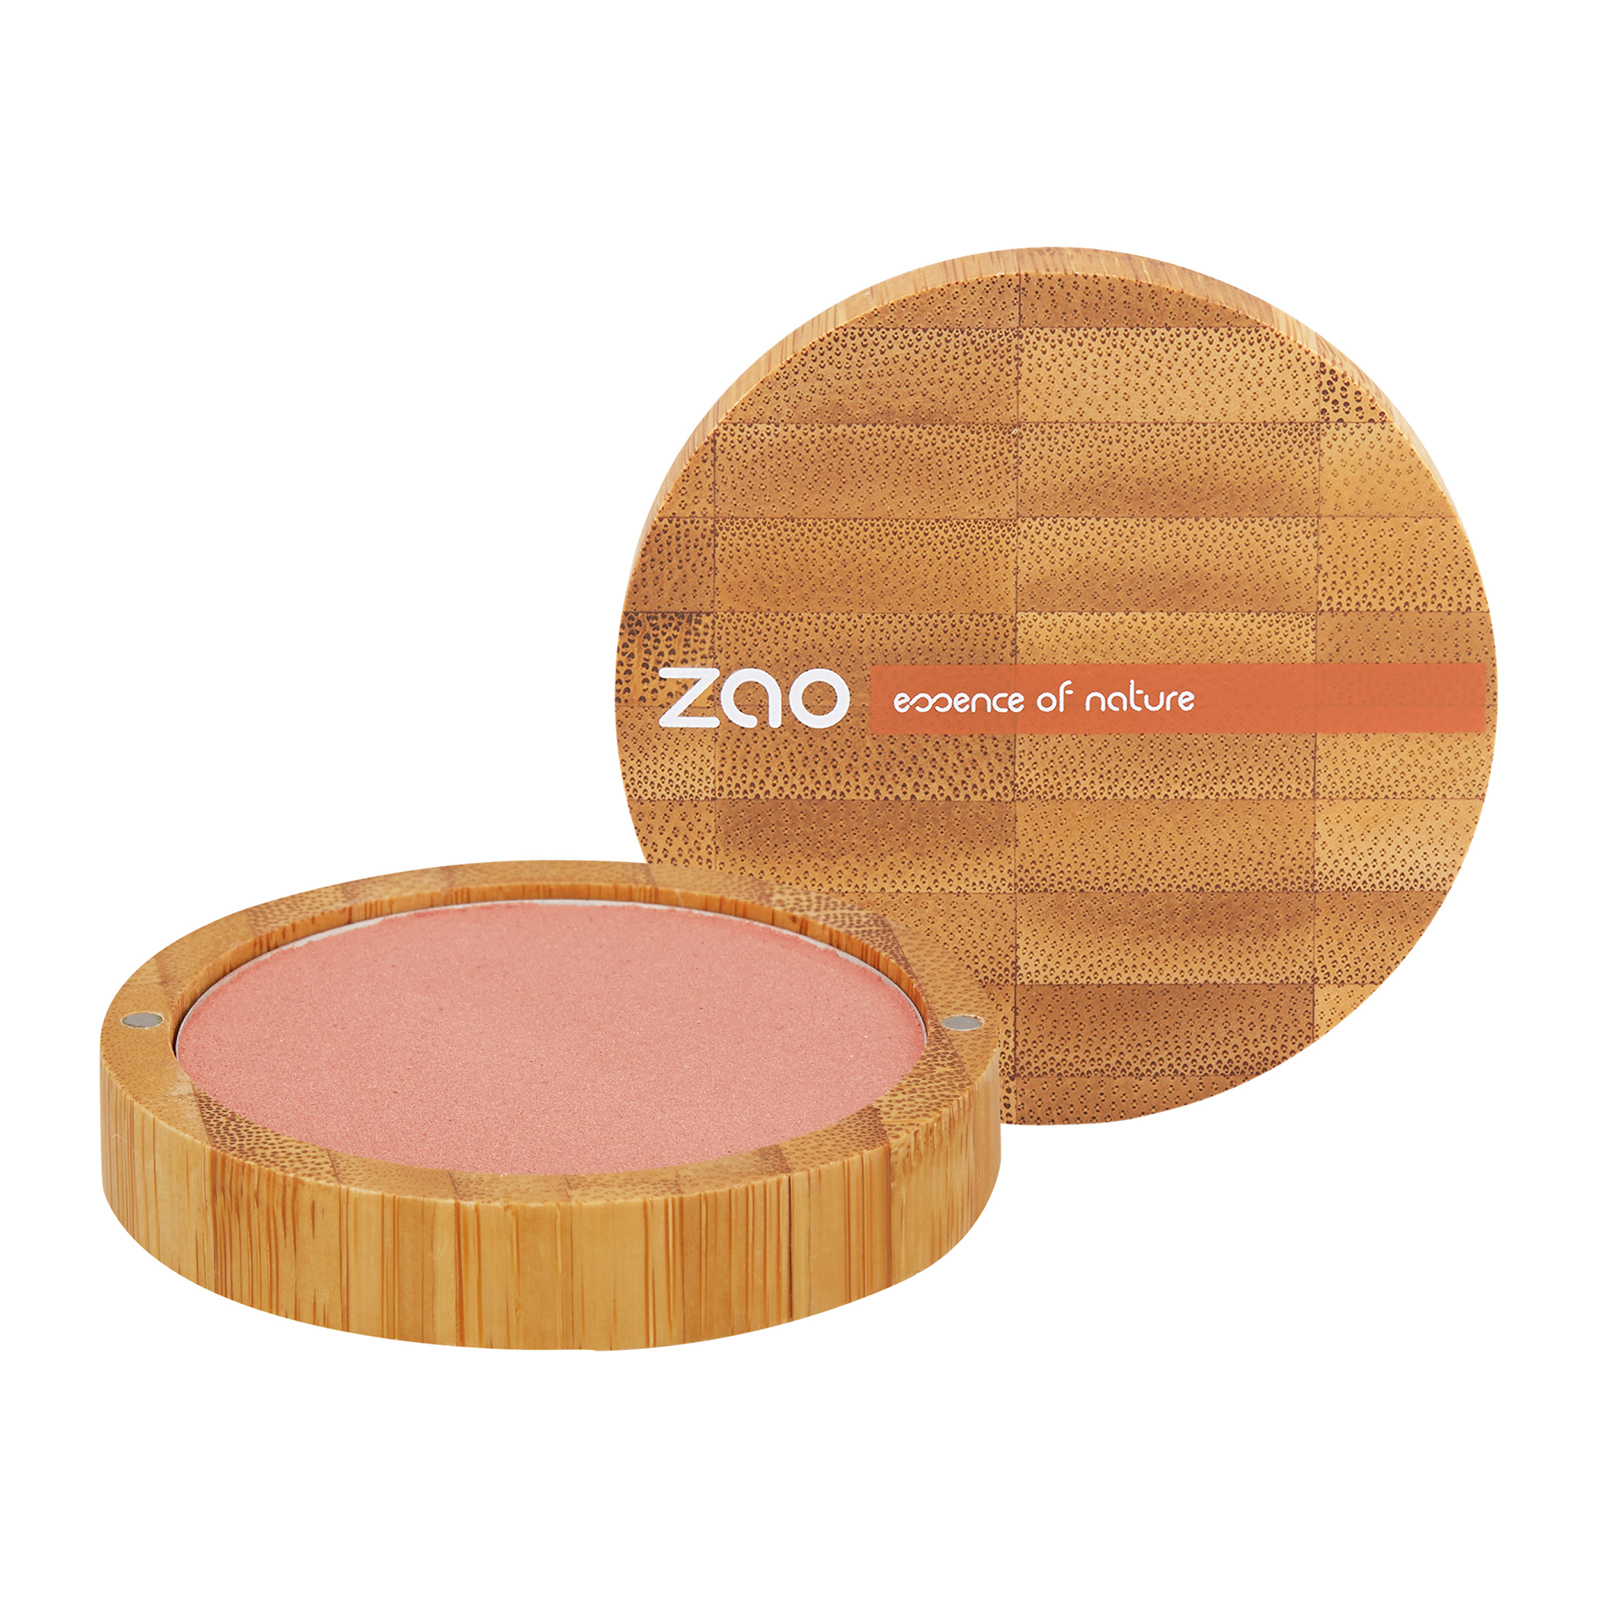 ZAO  Compact Blush 325 Golden coral, 0.32oz, 9g from Cosme-De.com